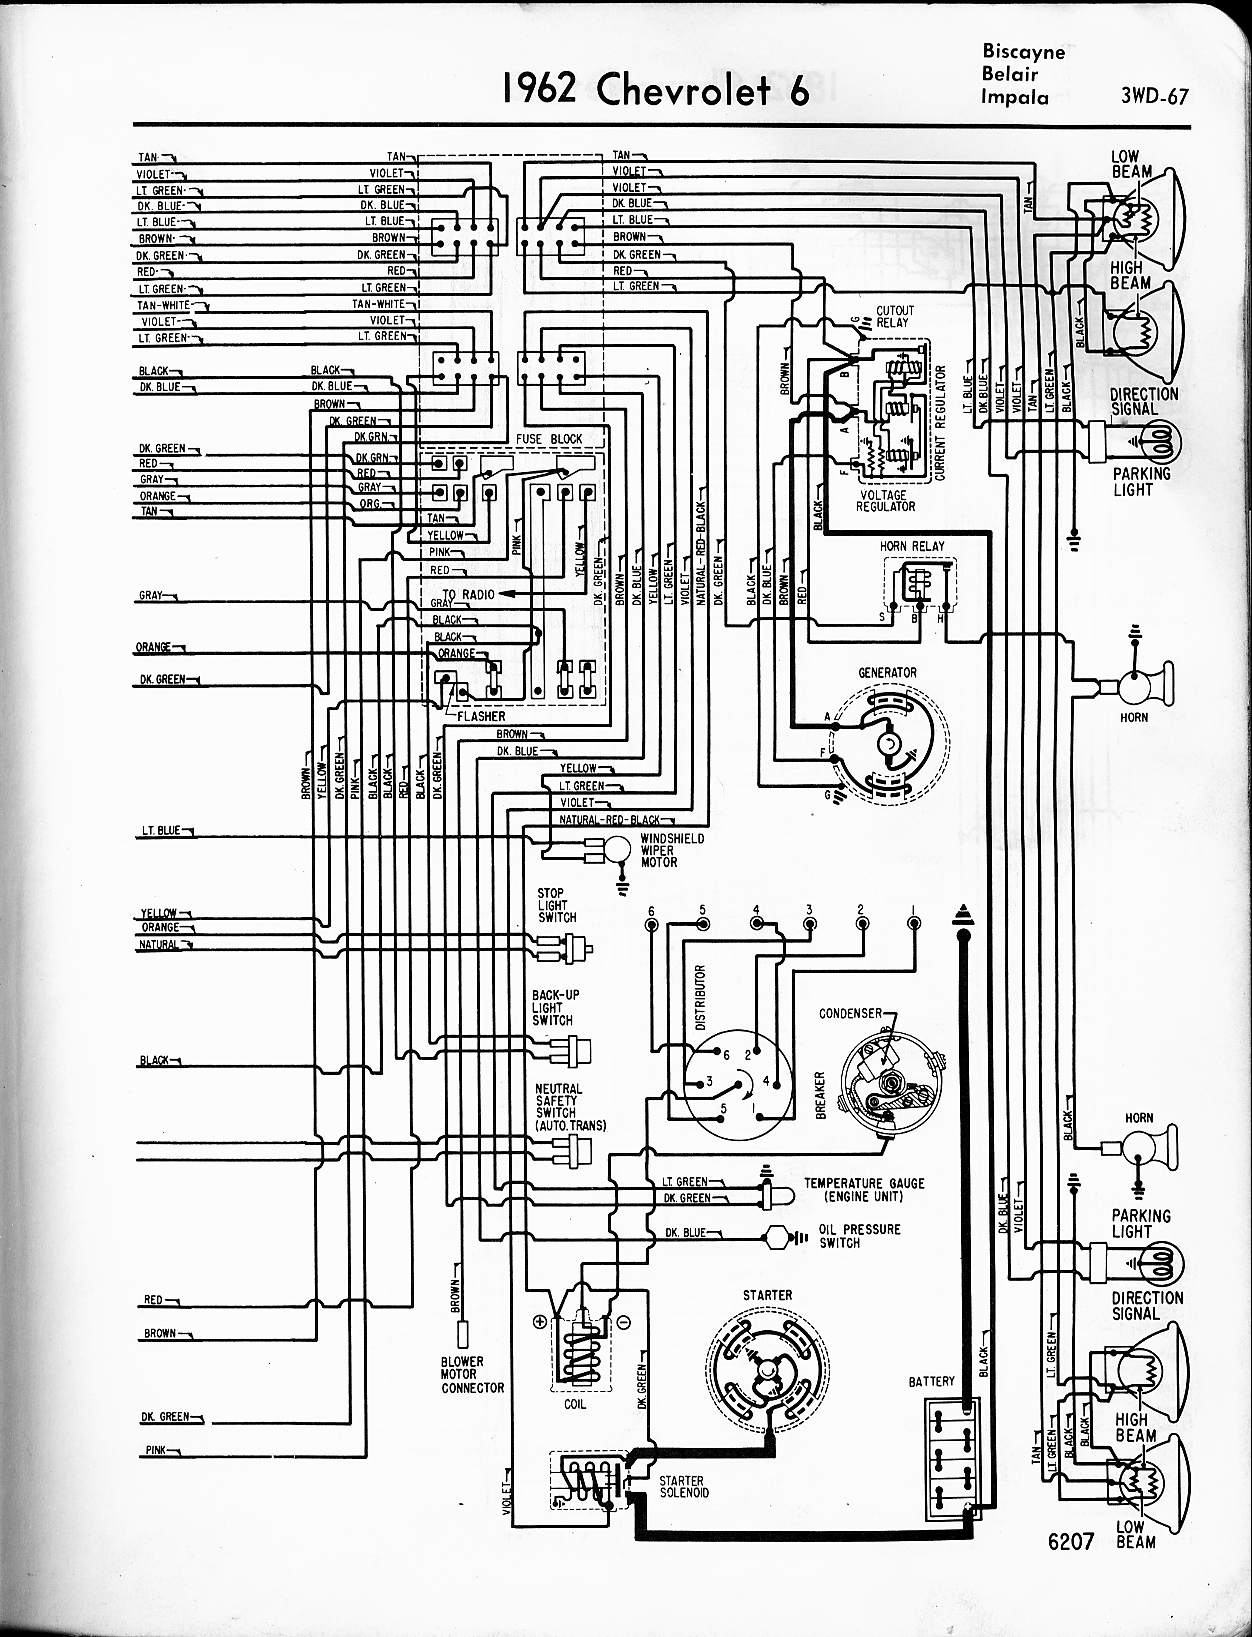 [DIAGRAM] 1969 Chevy Corvette Wiring Diagram FULL Version